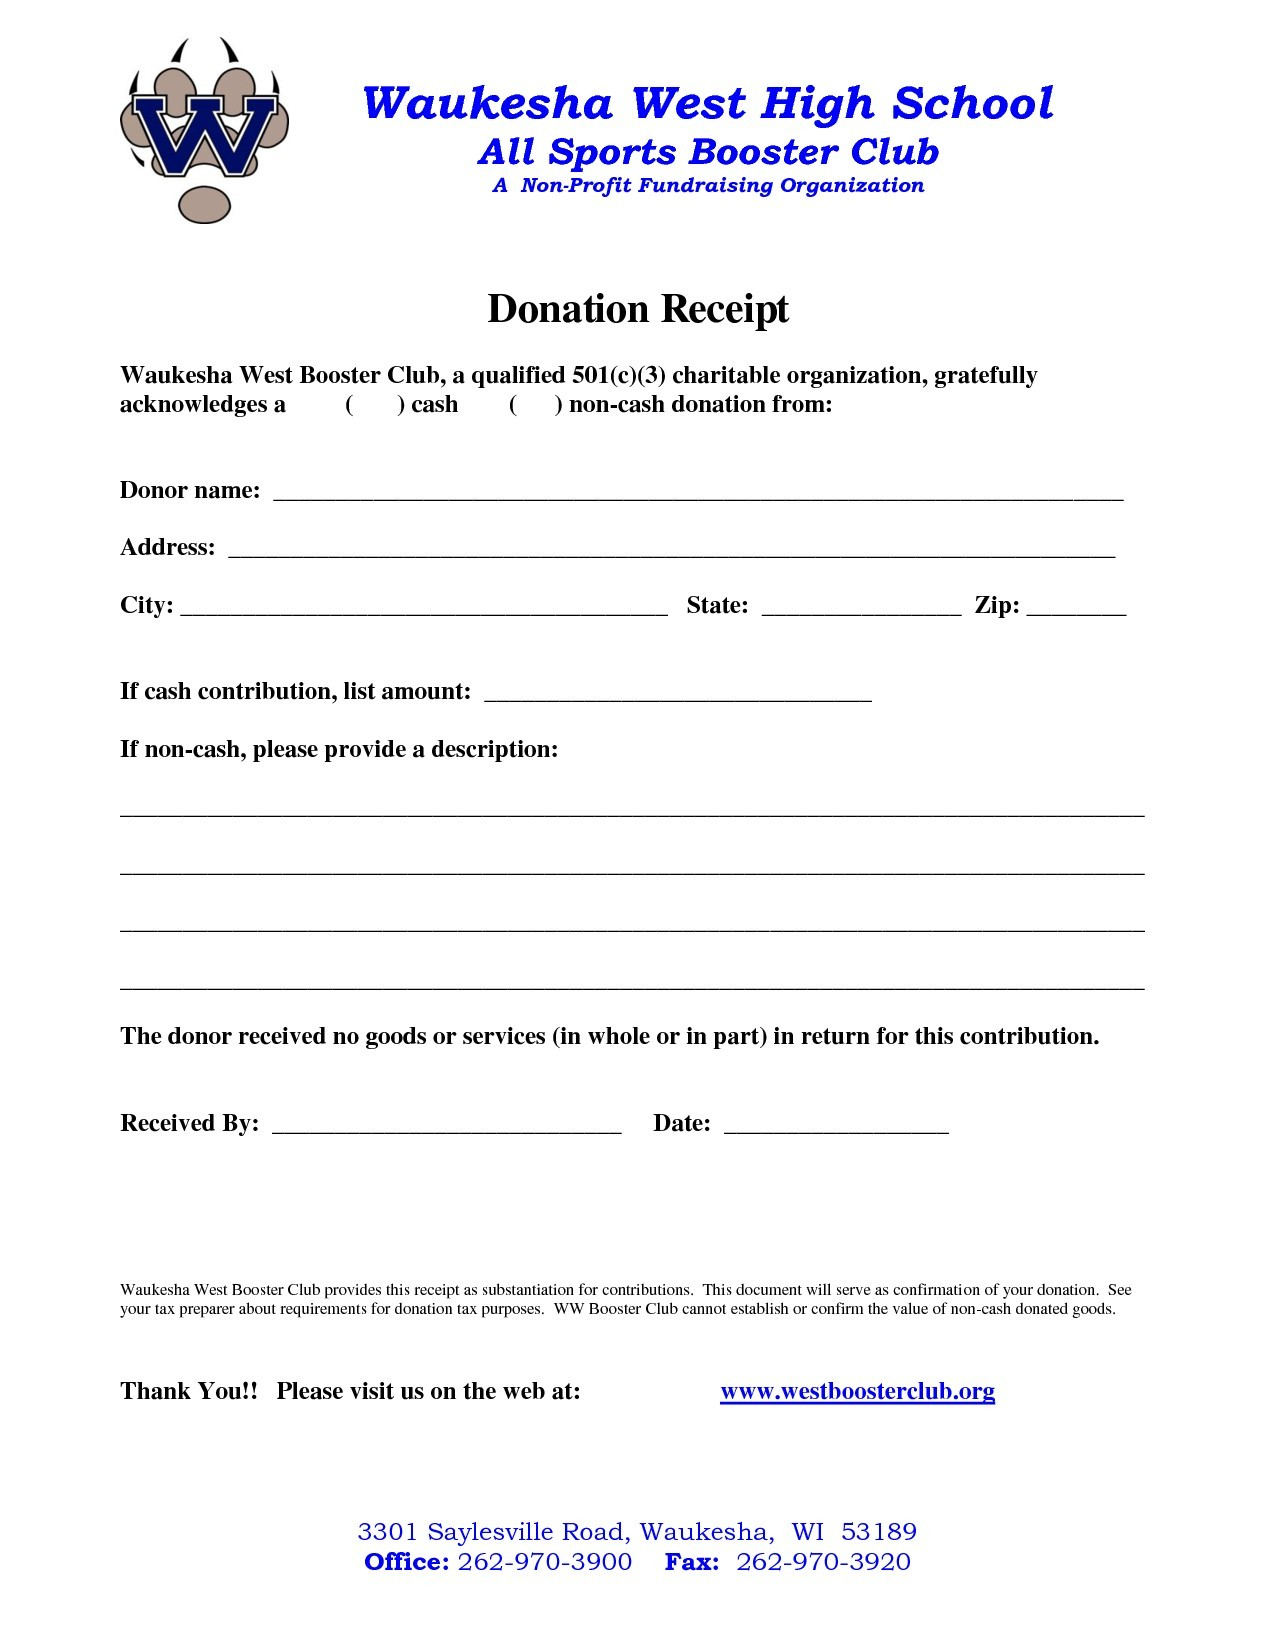 donation receipt letter template example-Awesome Non Profit Donation Receipt Template 7-t